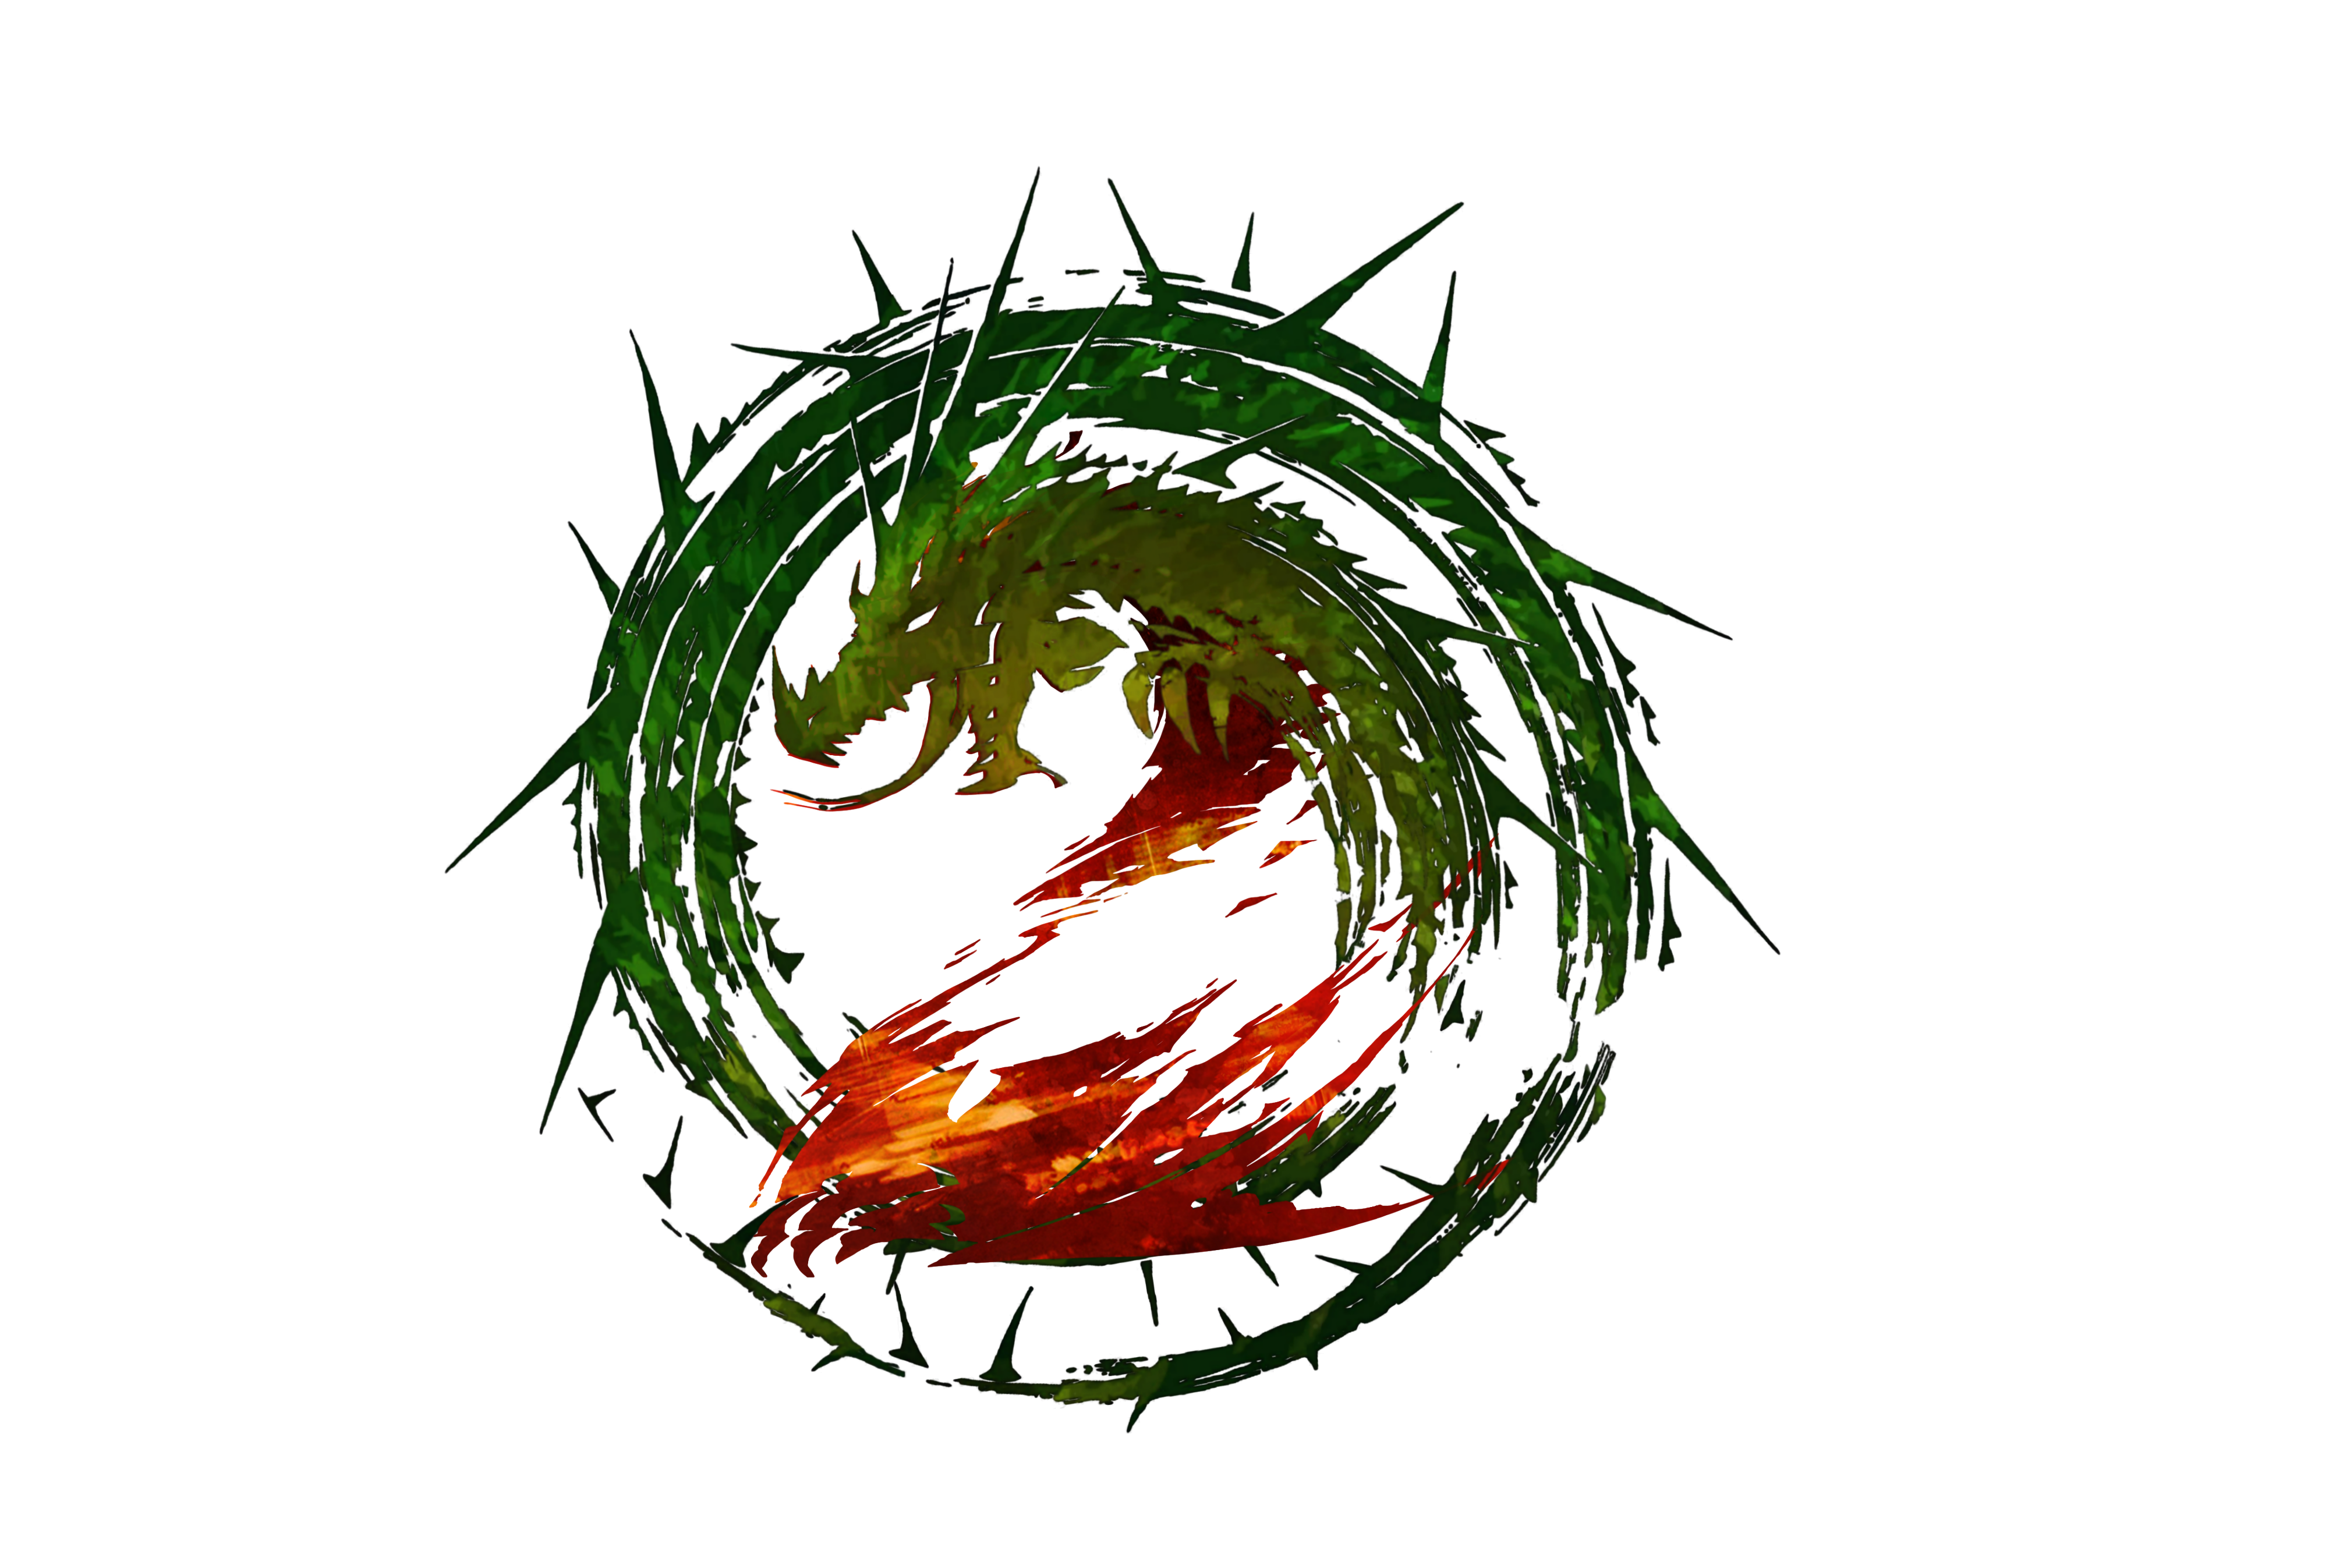 Guild wars 2 png. Heart of thorns logo